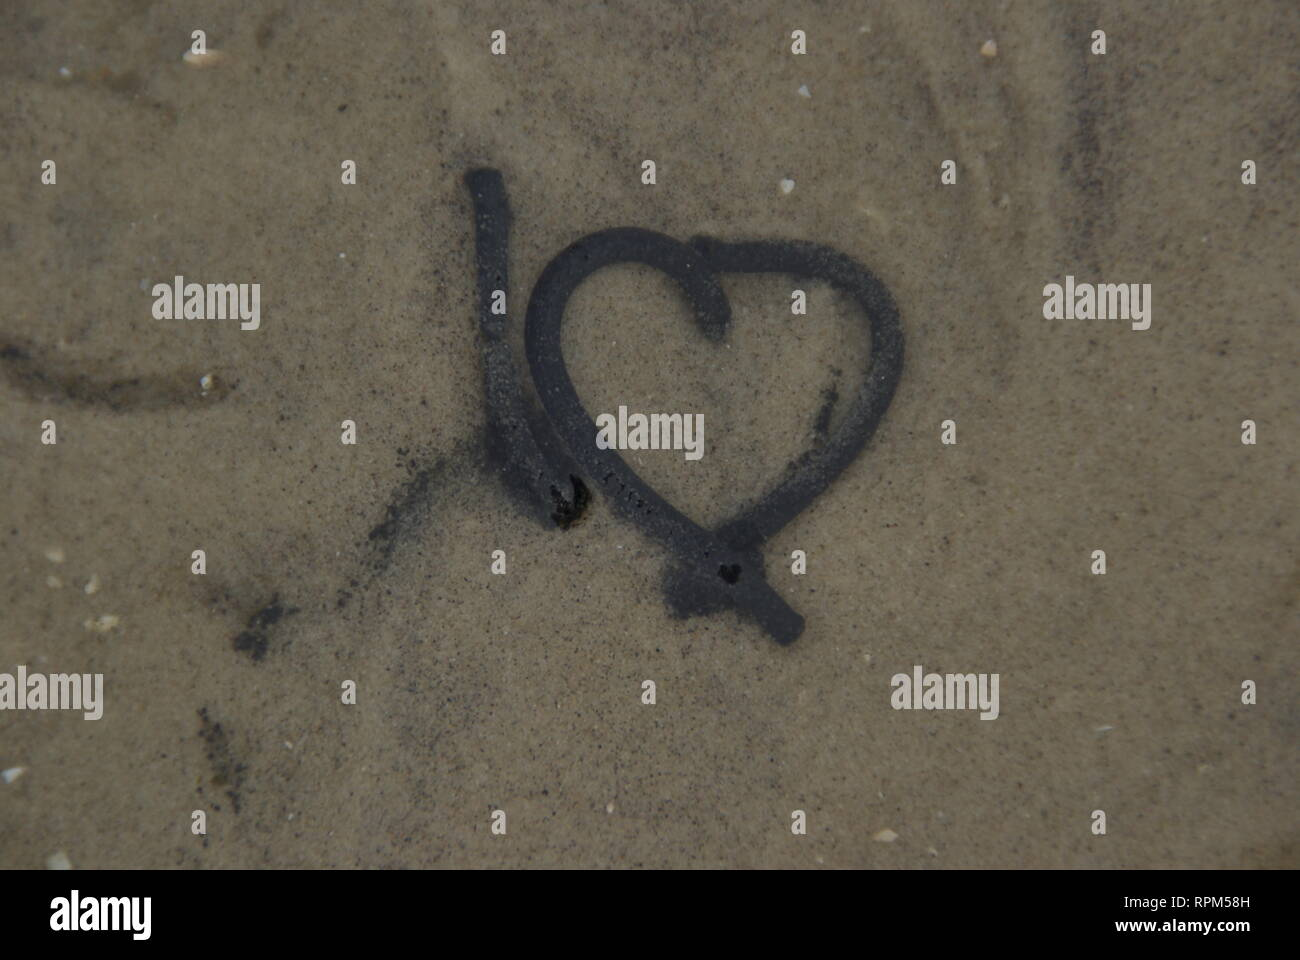 Bizarre excretion of a rock worm in shape of a heart - Stock Image